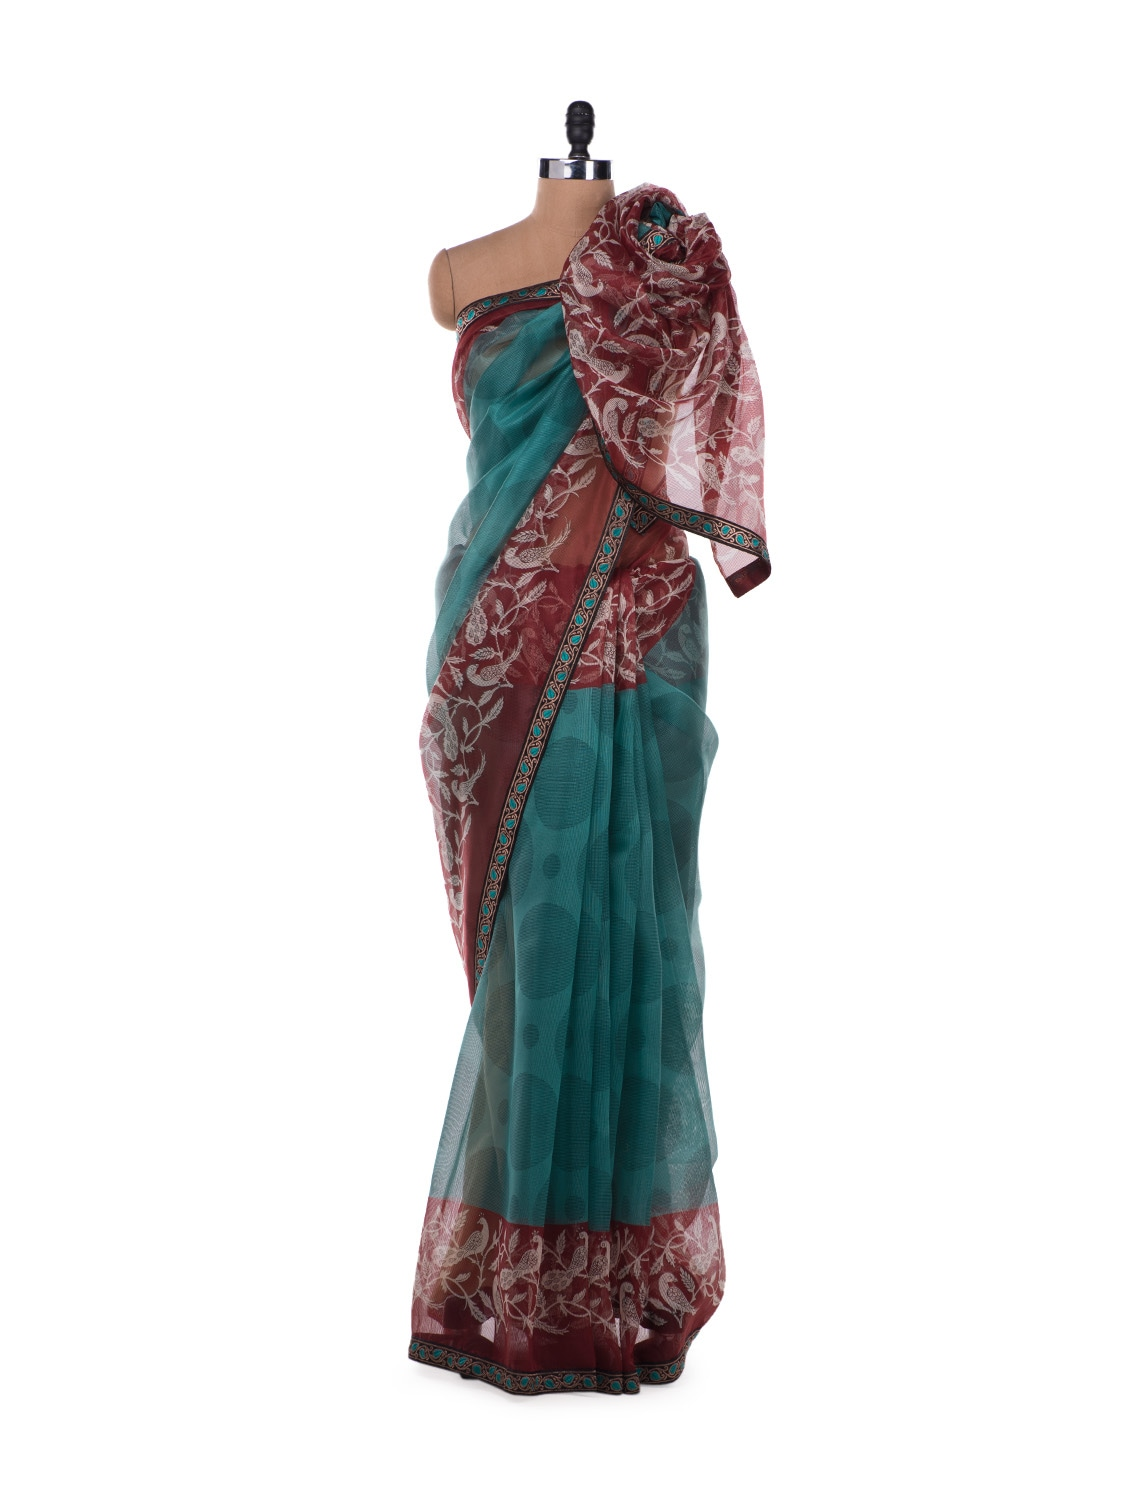 Mint Green And Maroon Peacock Panel Saree - ROOP KASHISH